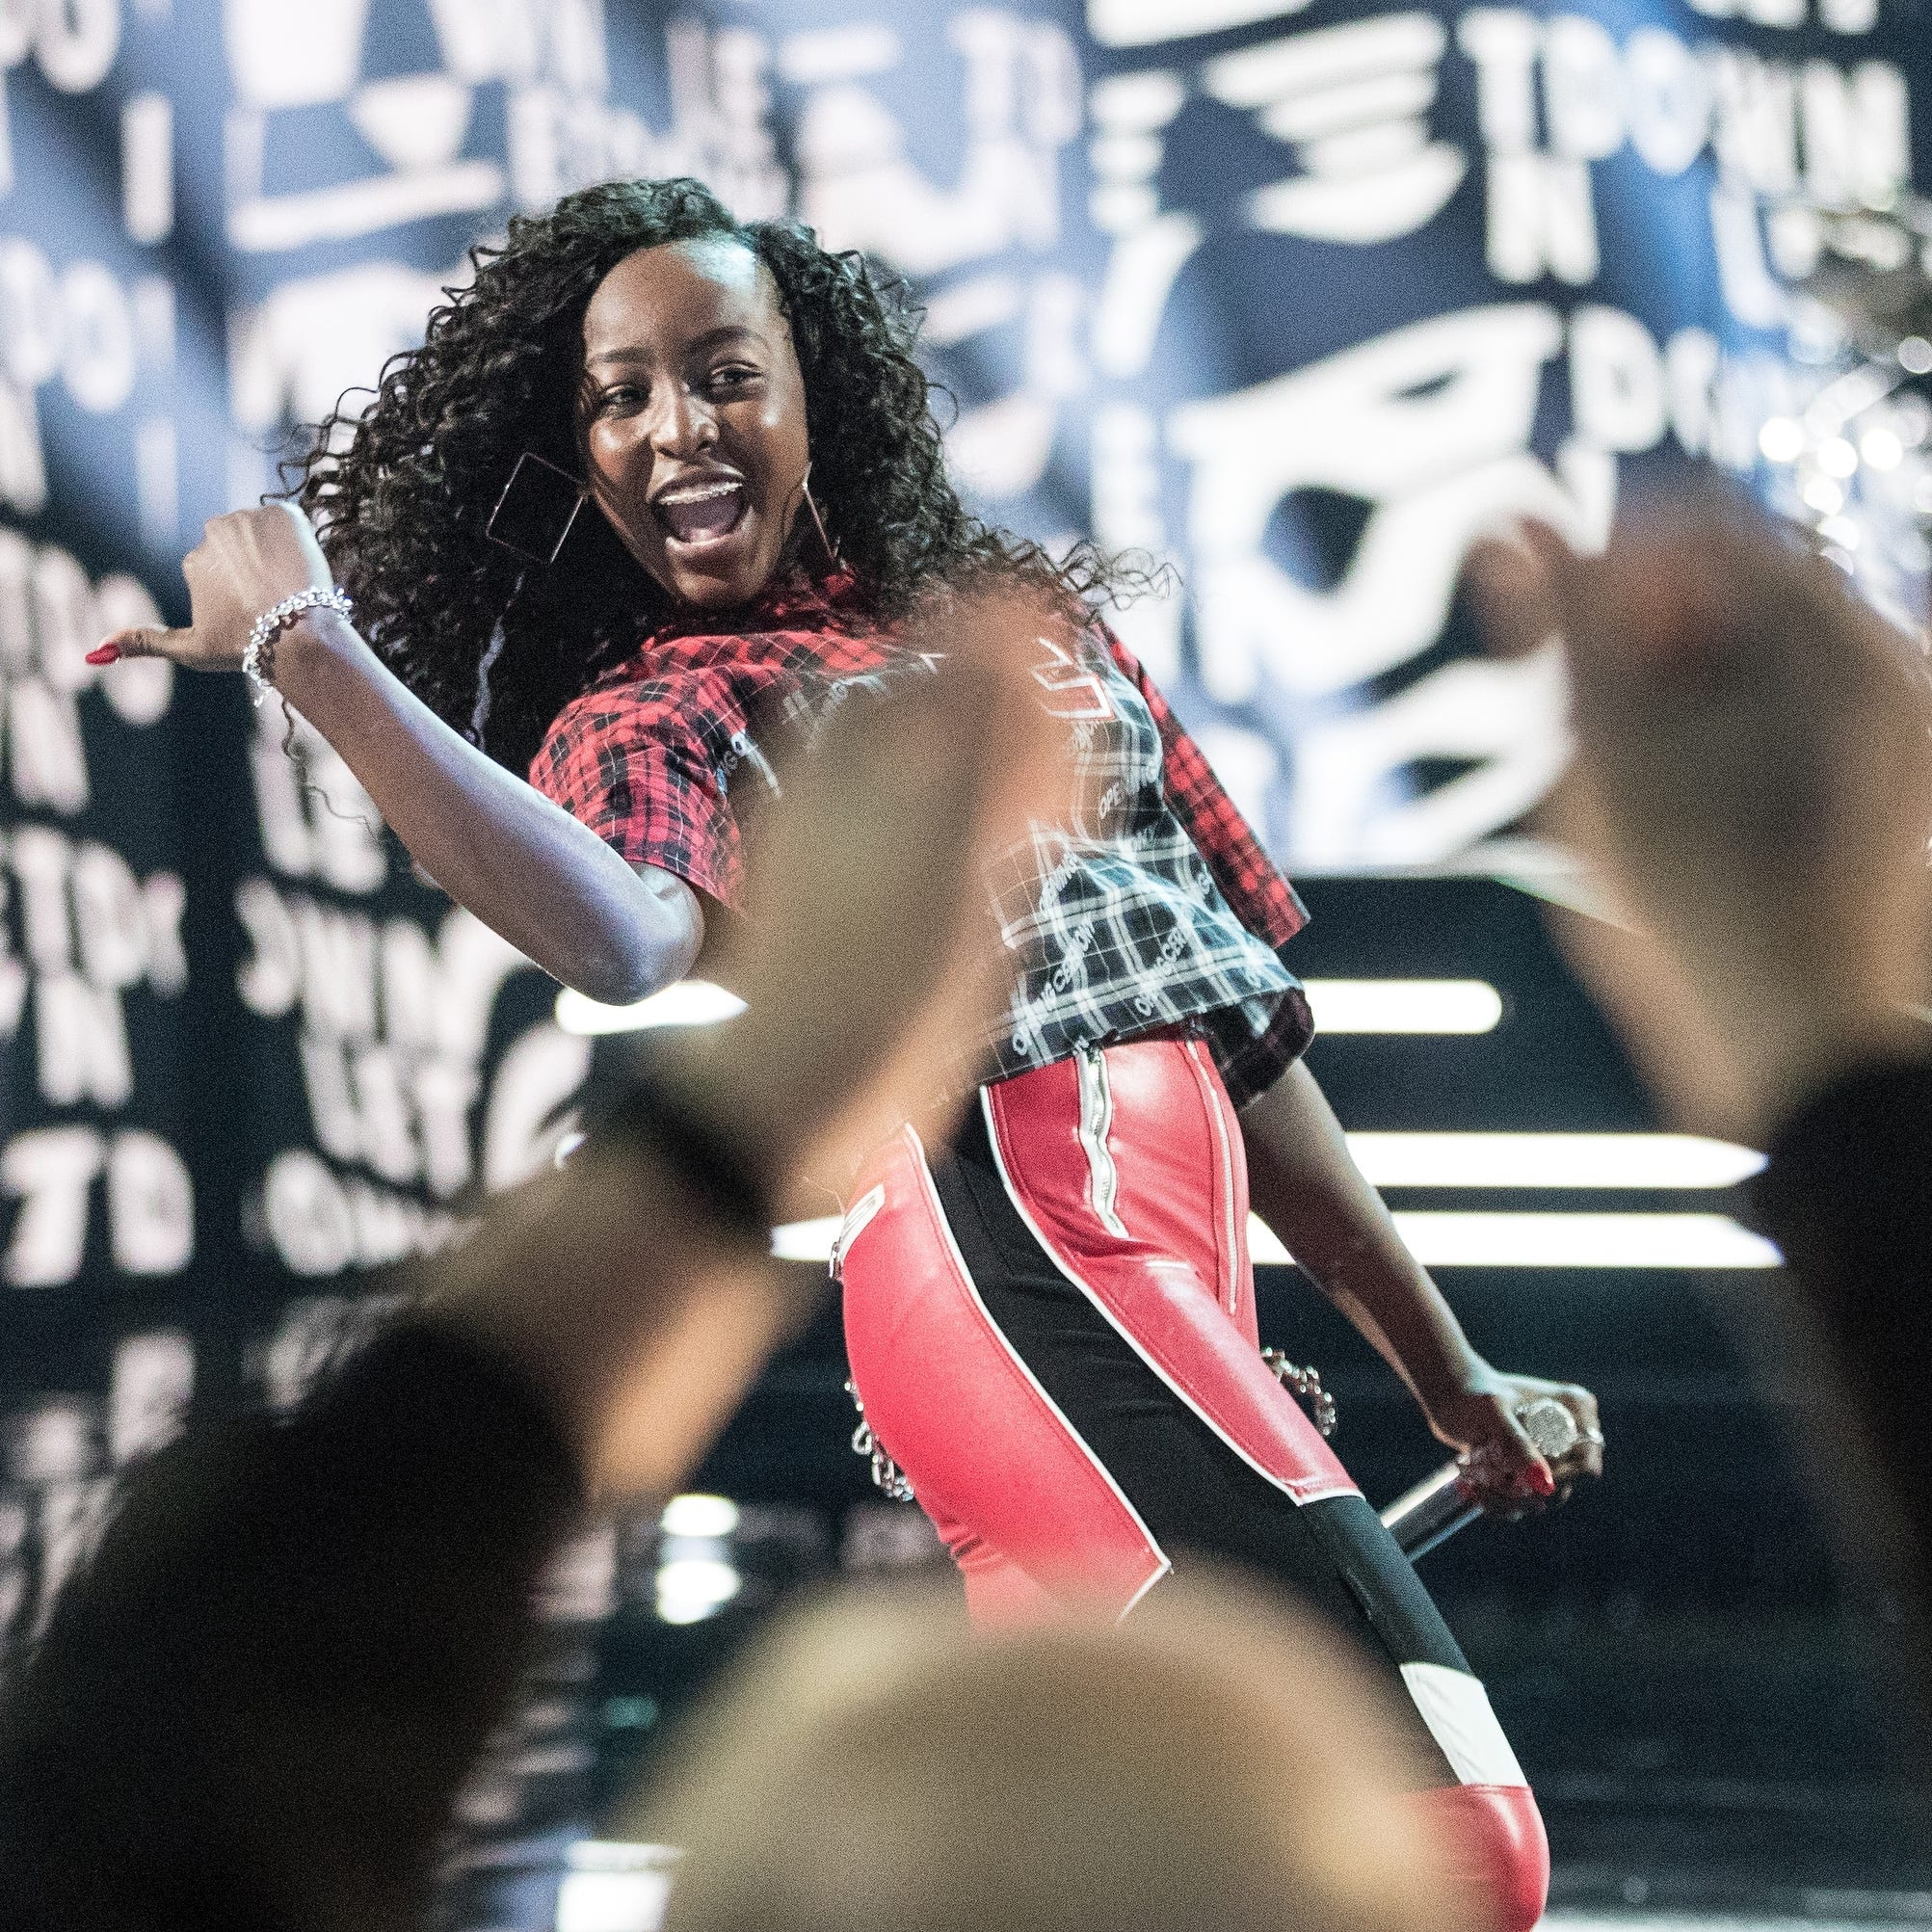 Go behind the scenes of an 'America's Got Talent' live show